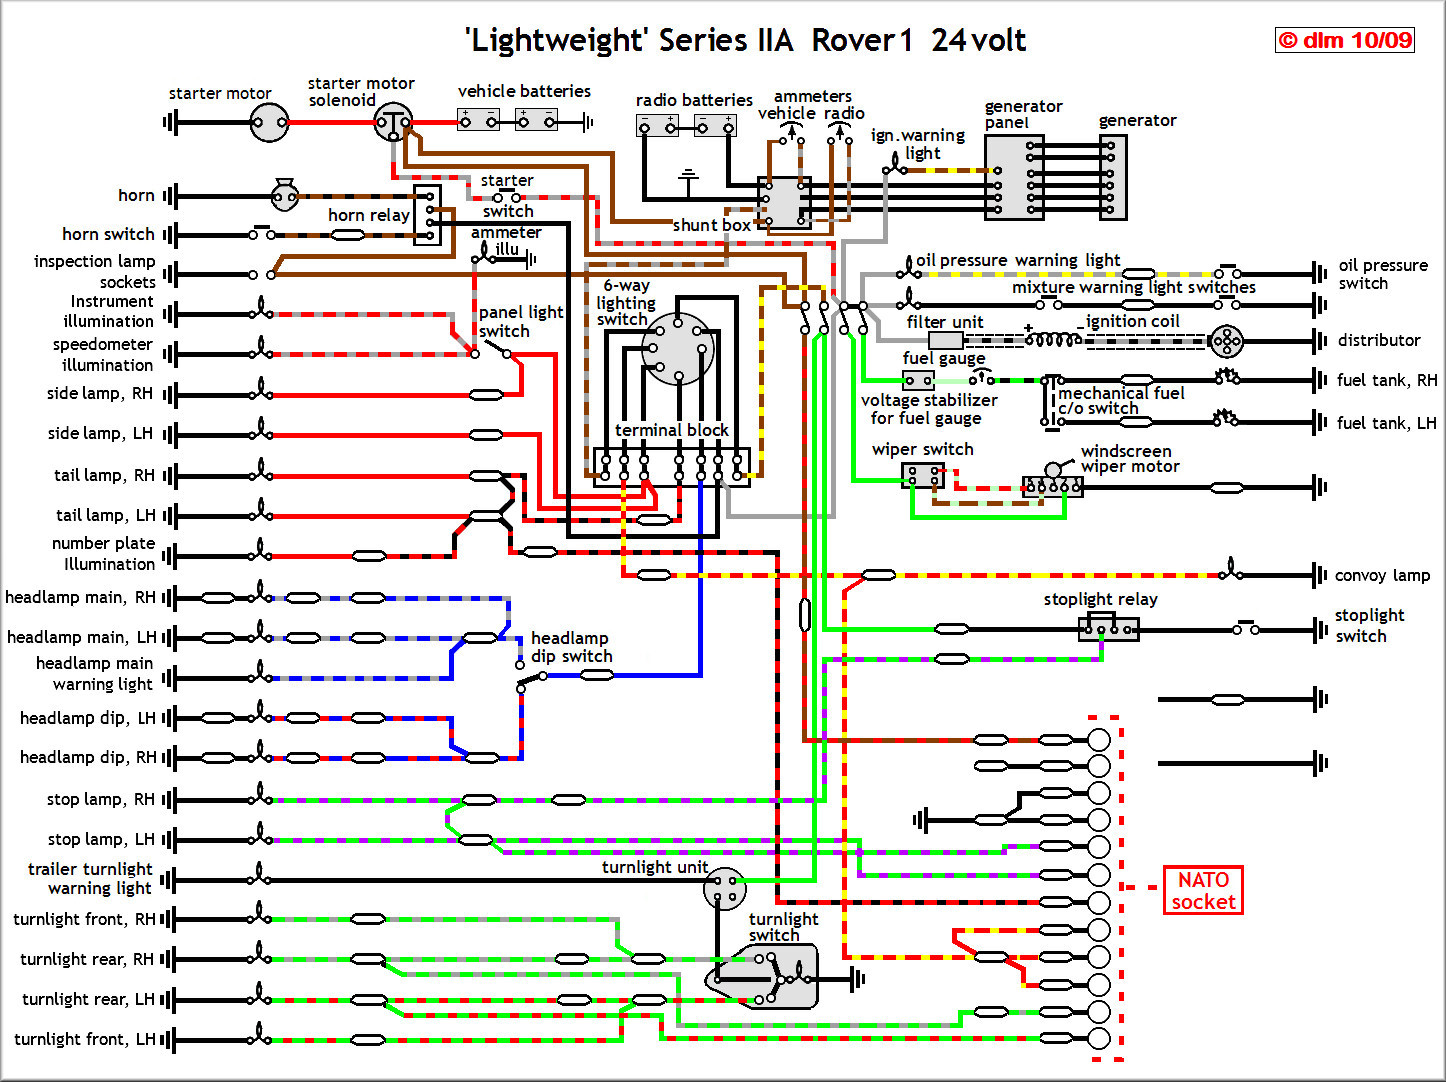 rover1 24Av land rover lr3 wiring diagram land rover belt routing \u2022 wiring land rover discovery td5 fuse box diagram at gsmx.co